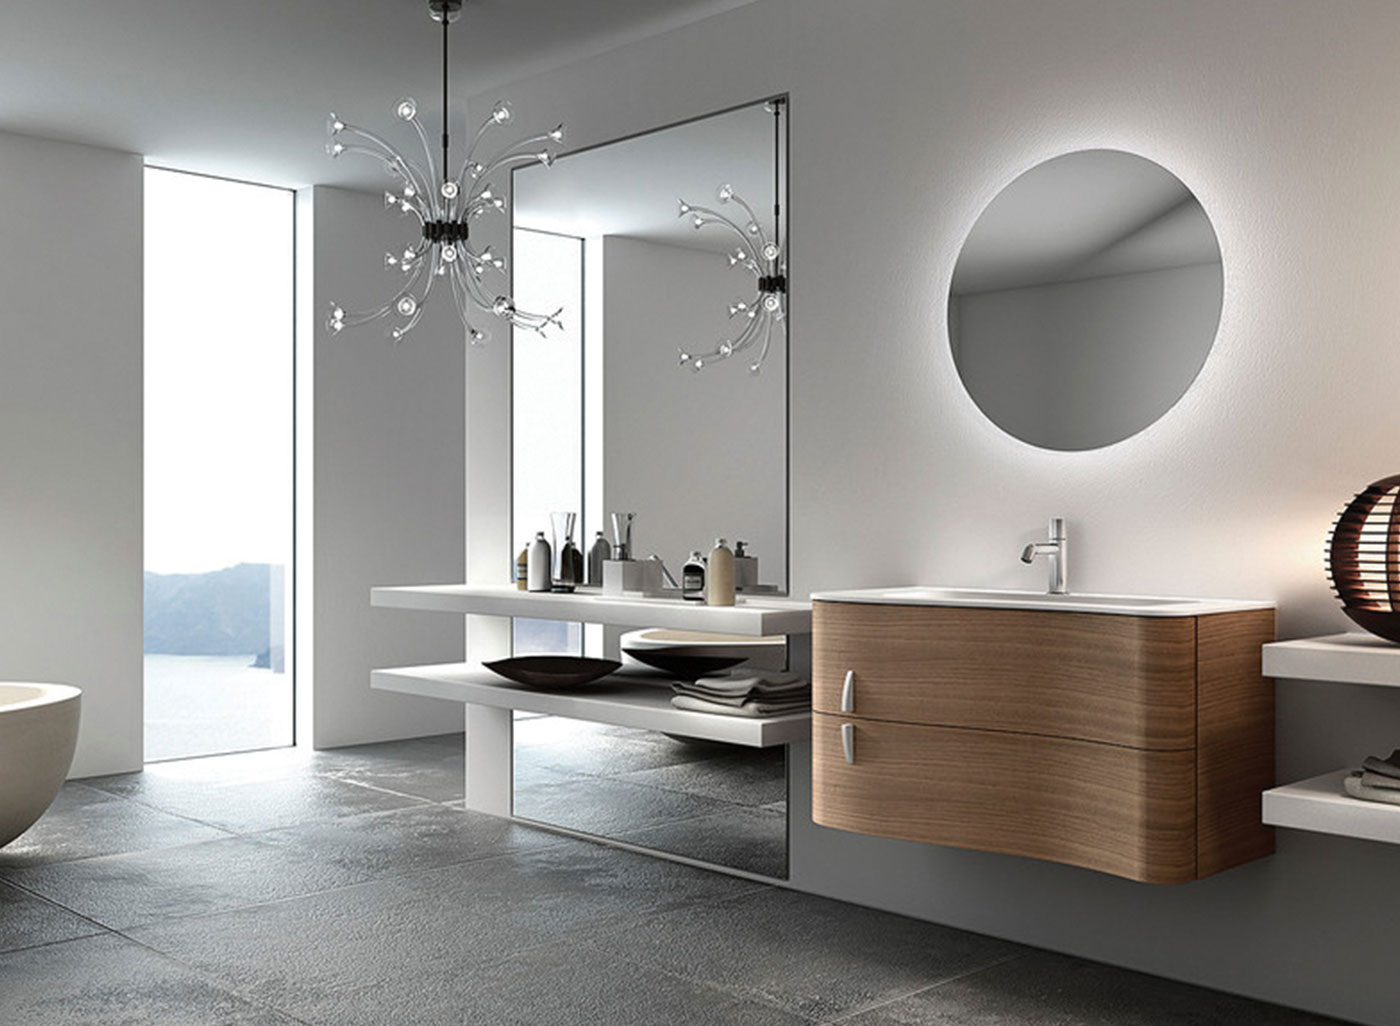 Ablaze premium back-lit mirrors run on a low engery light allowing the light to be left on contantly and used as a night light. All modfels include LED Lights and a 12 Volt transformer.